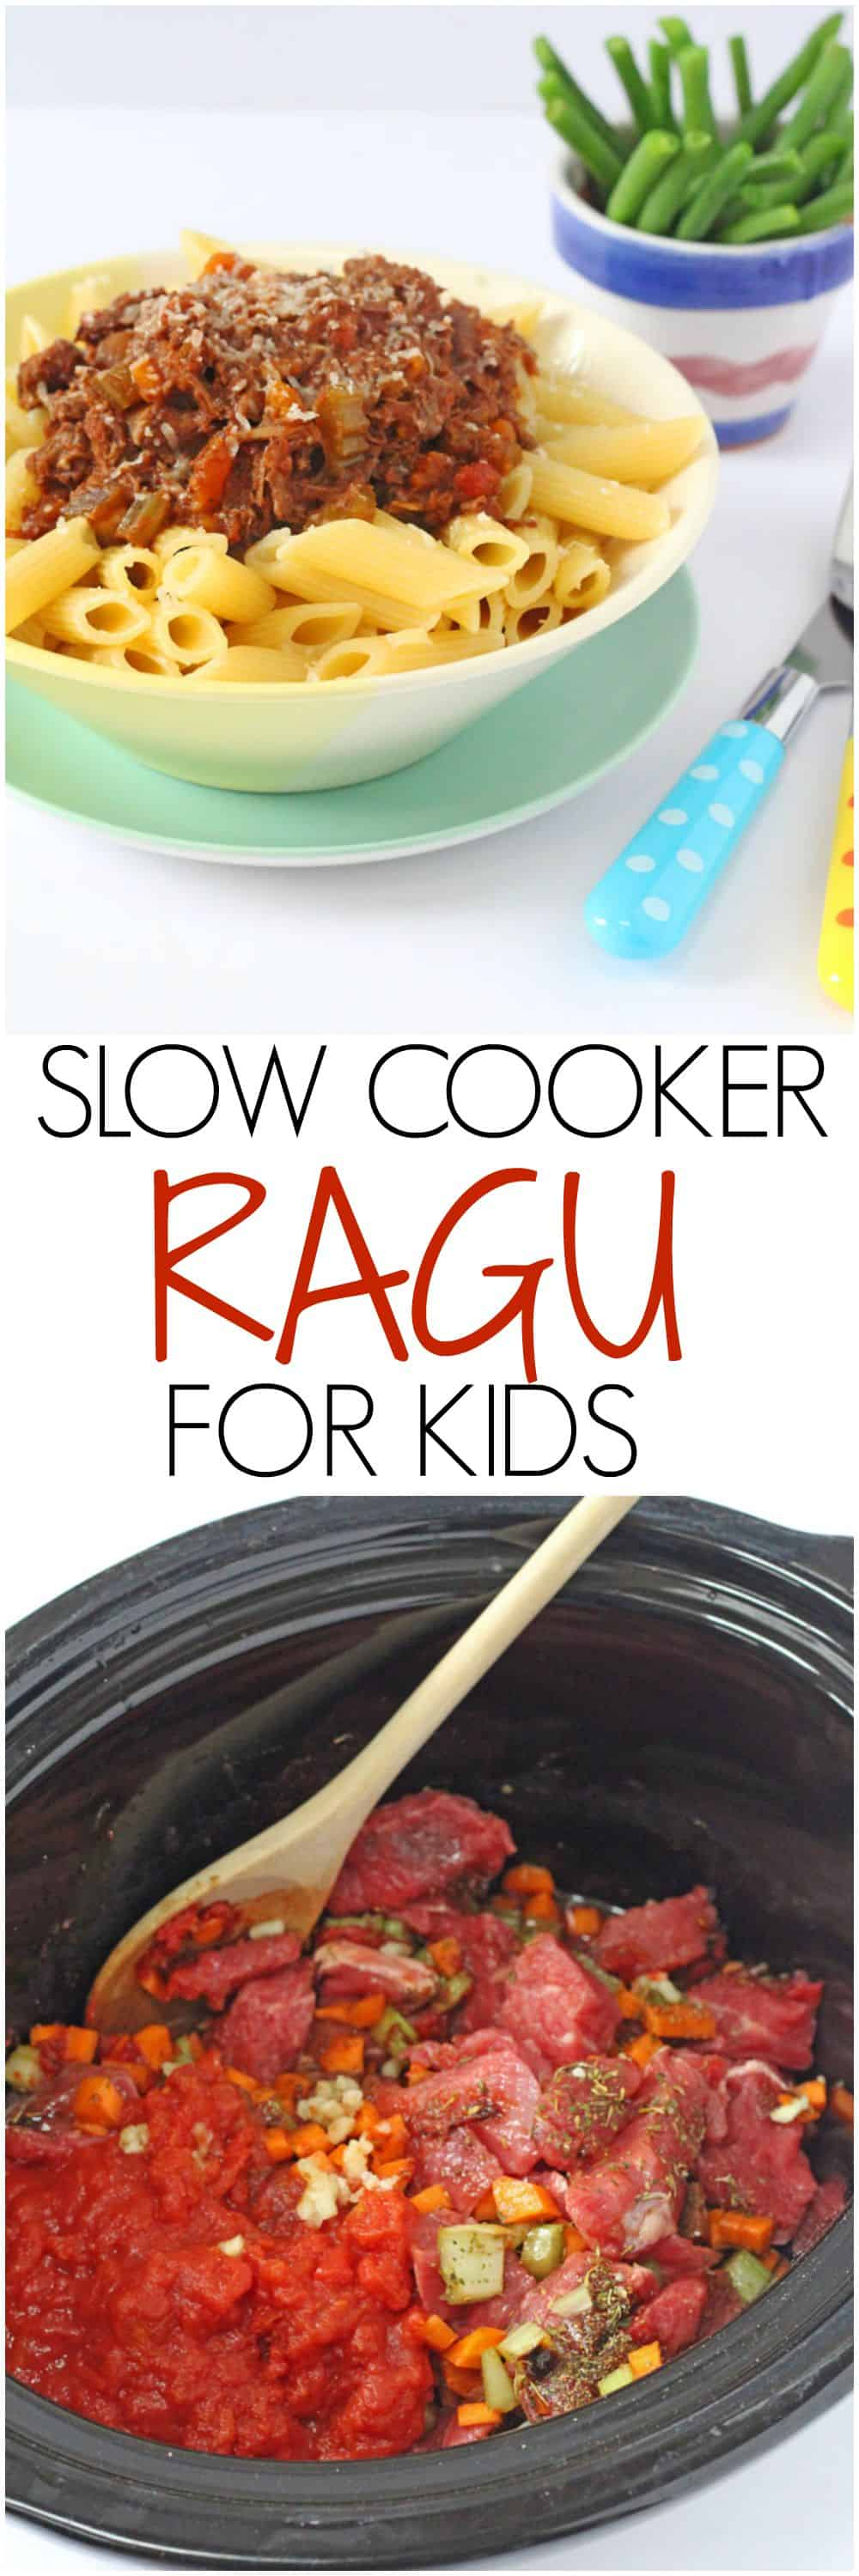 A super easy slow cooker ragu recipe with one secret ingredient. No frying required and everything is cooked in one pot!| My Fussy Eater blog